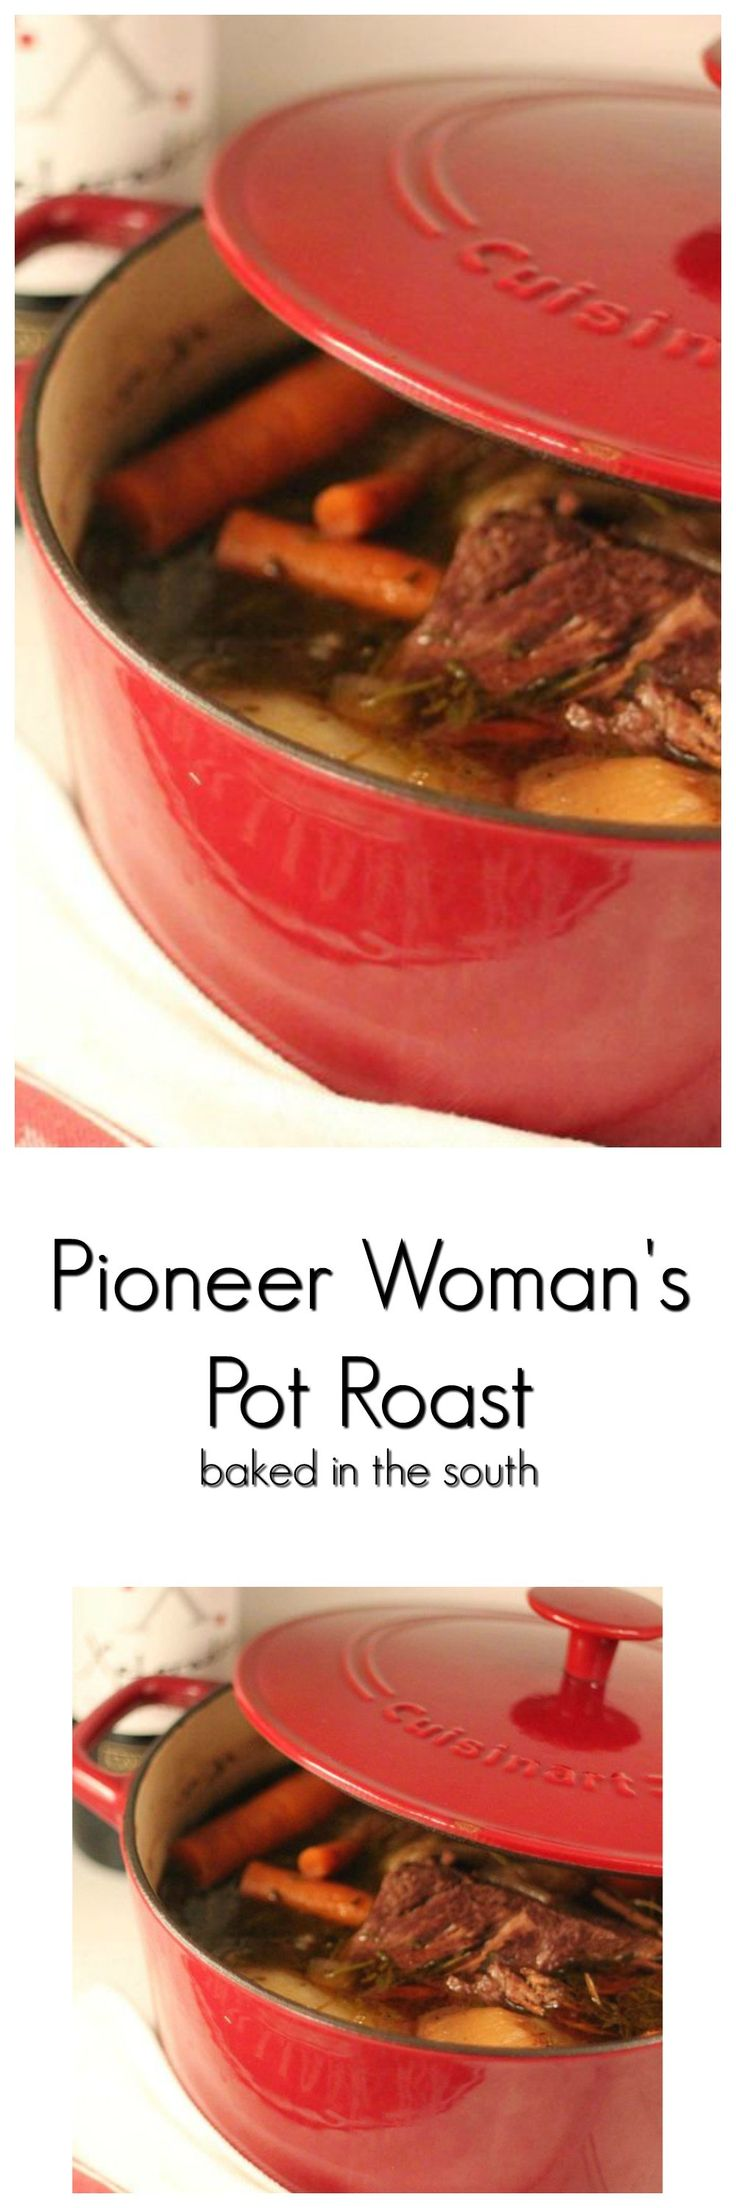 Pioneer Woman's Perfect Pot Roast- Add Large spoonful of tomato paste and orange marmalade to sauce and potatoes and mushrooms to vegetables